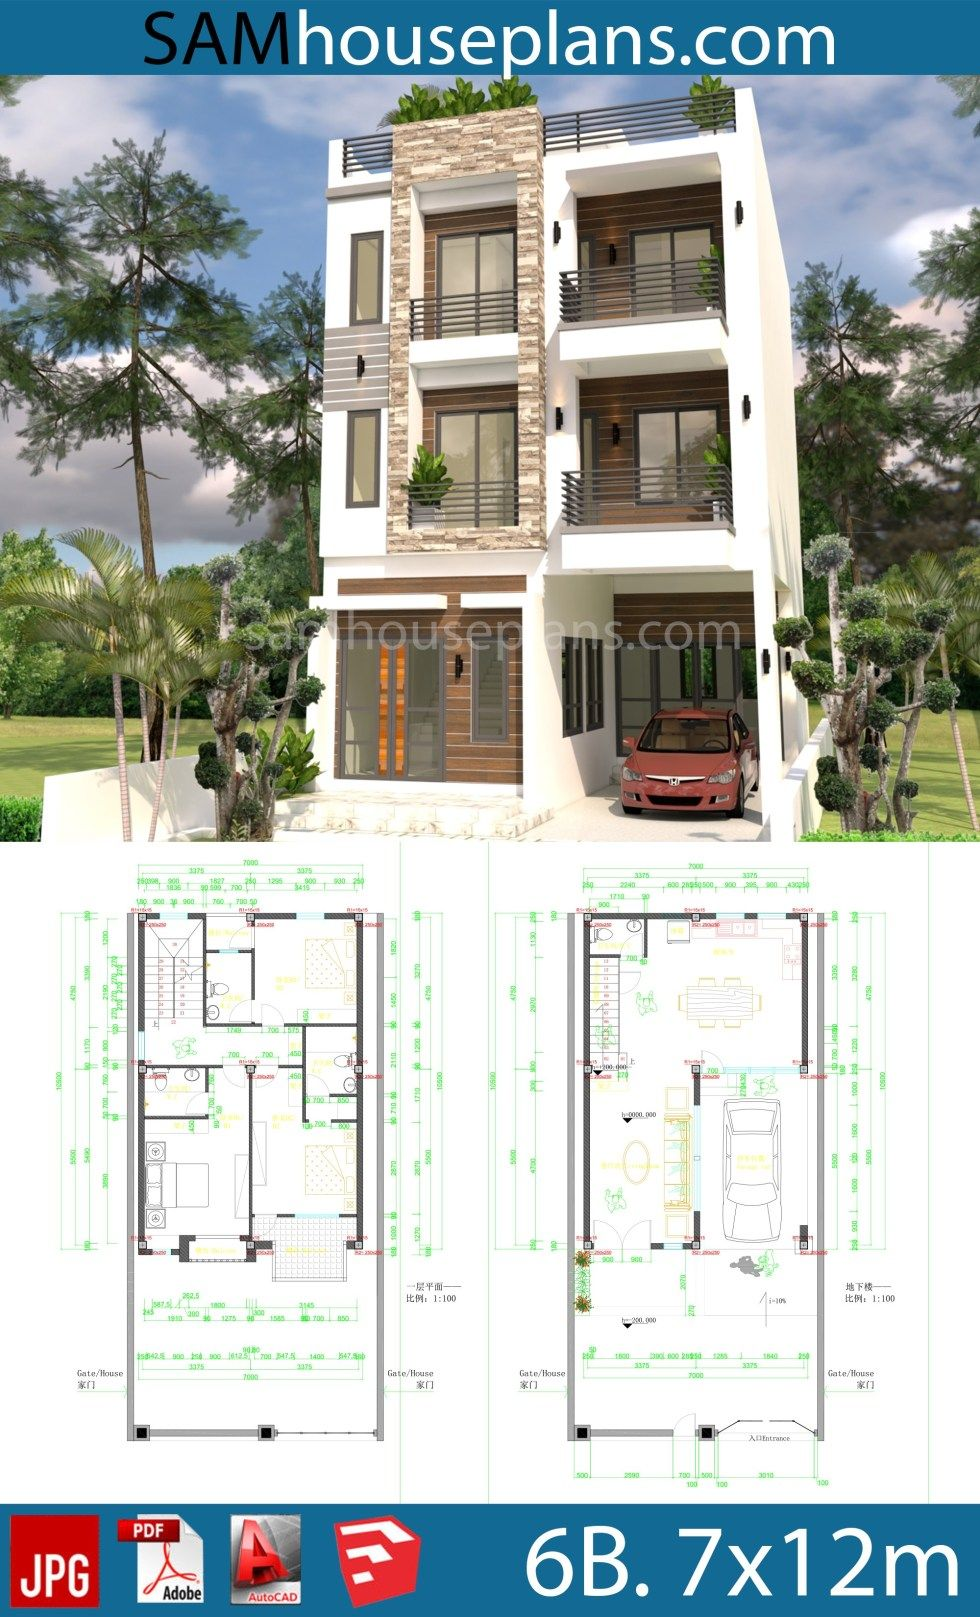 House Plans 7x10m With 6 Bedrooms Sam House Plans Two Story House Design Model House Plan Bungalow House Plans